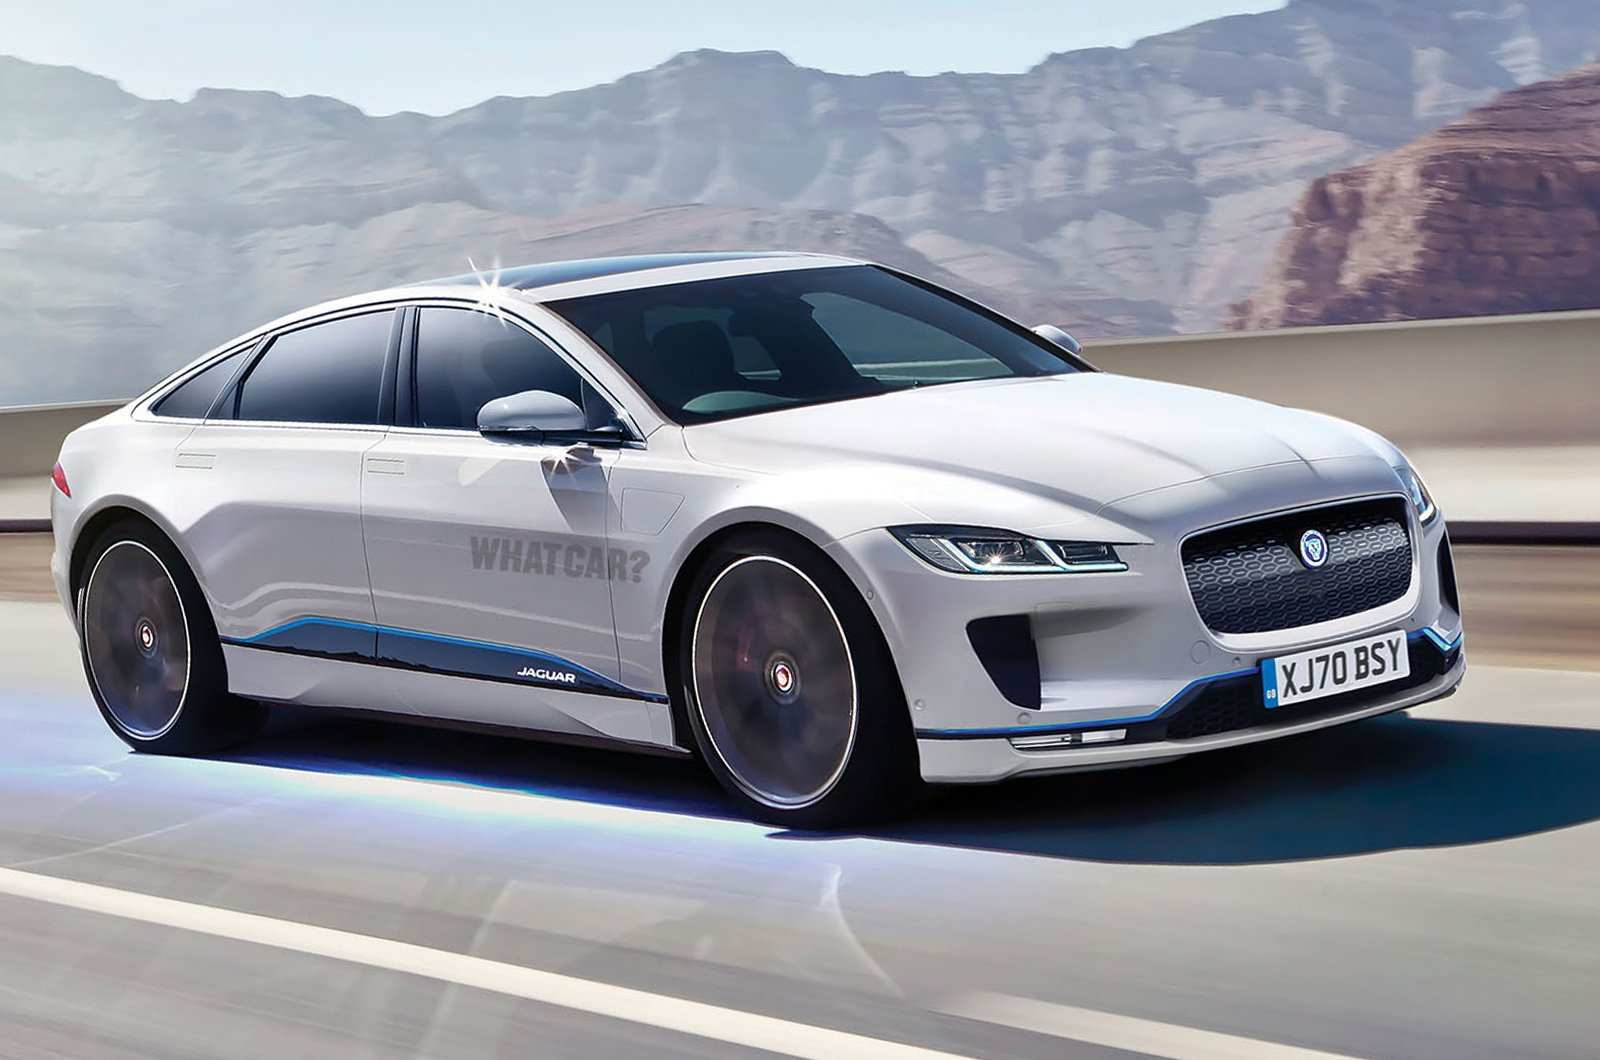 47 All New Jaguar Electric Cars 2020 Configurations